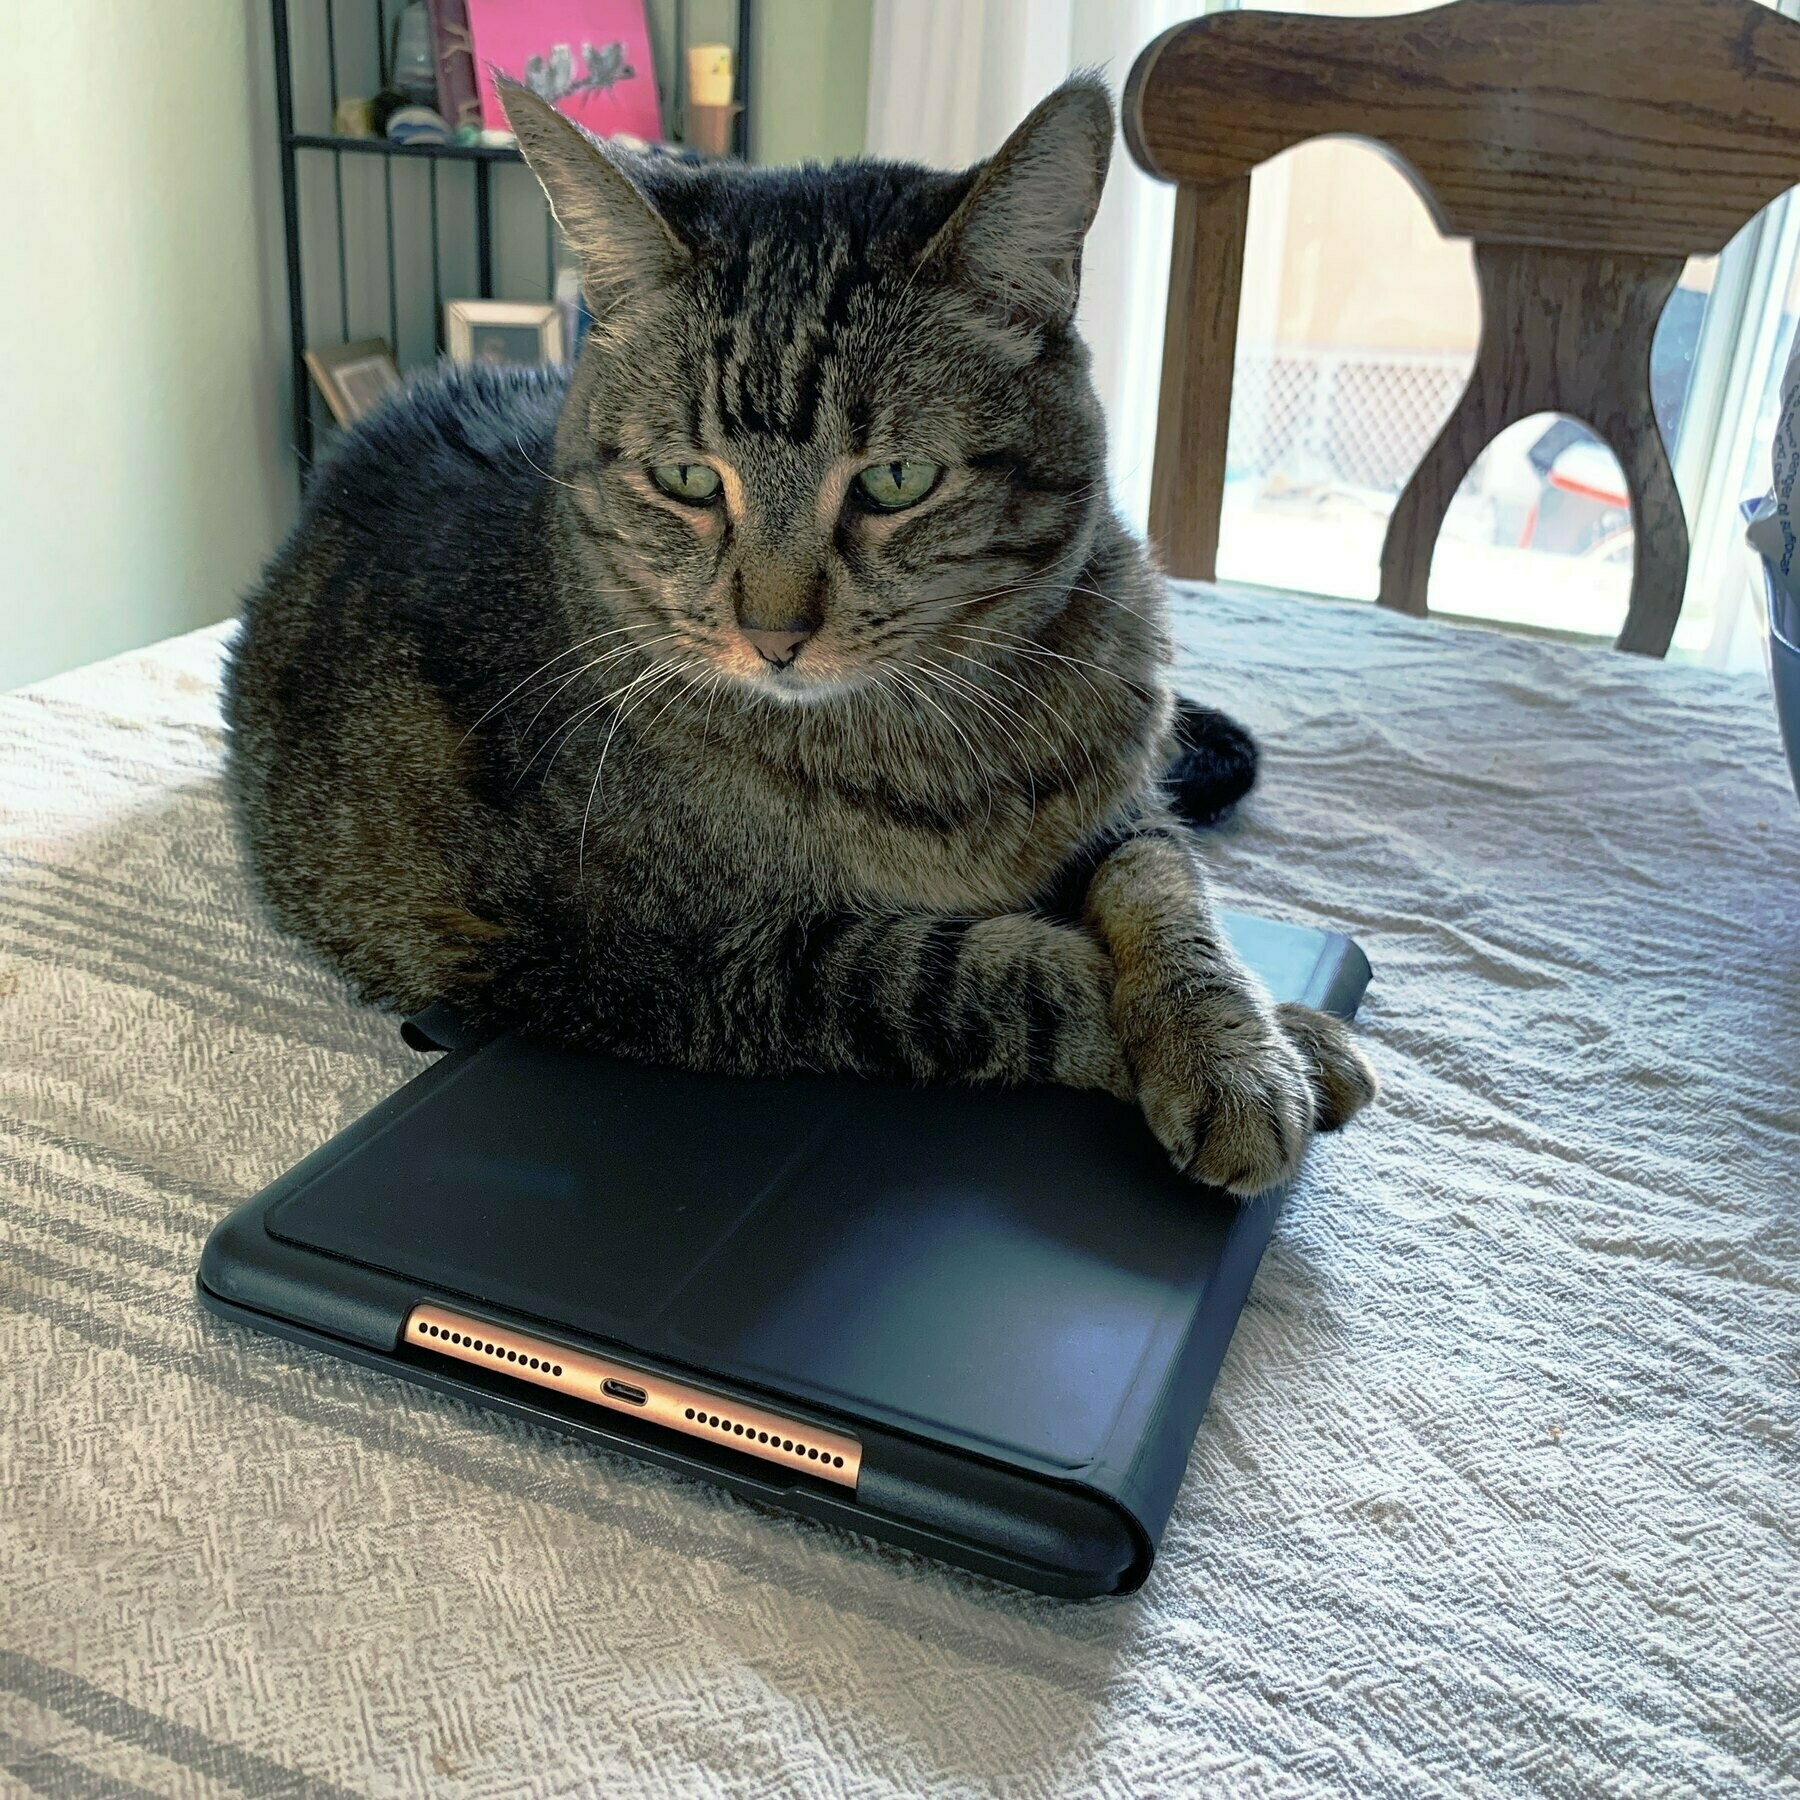 cat laying on ipad